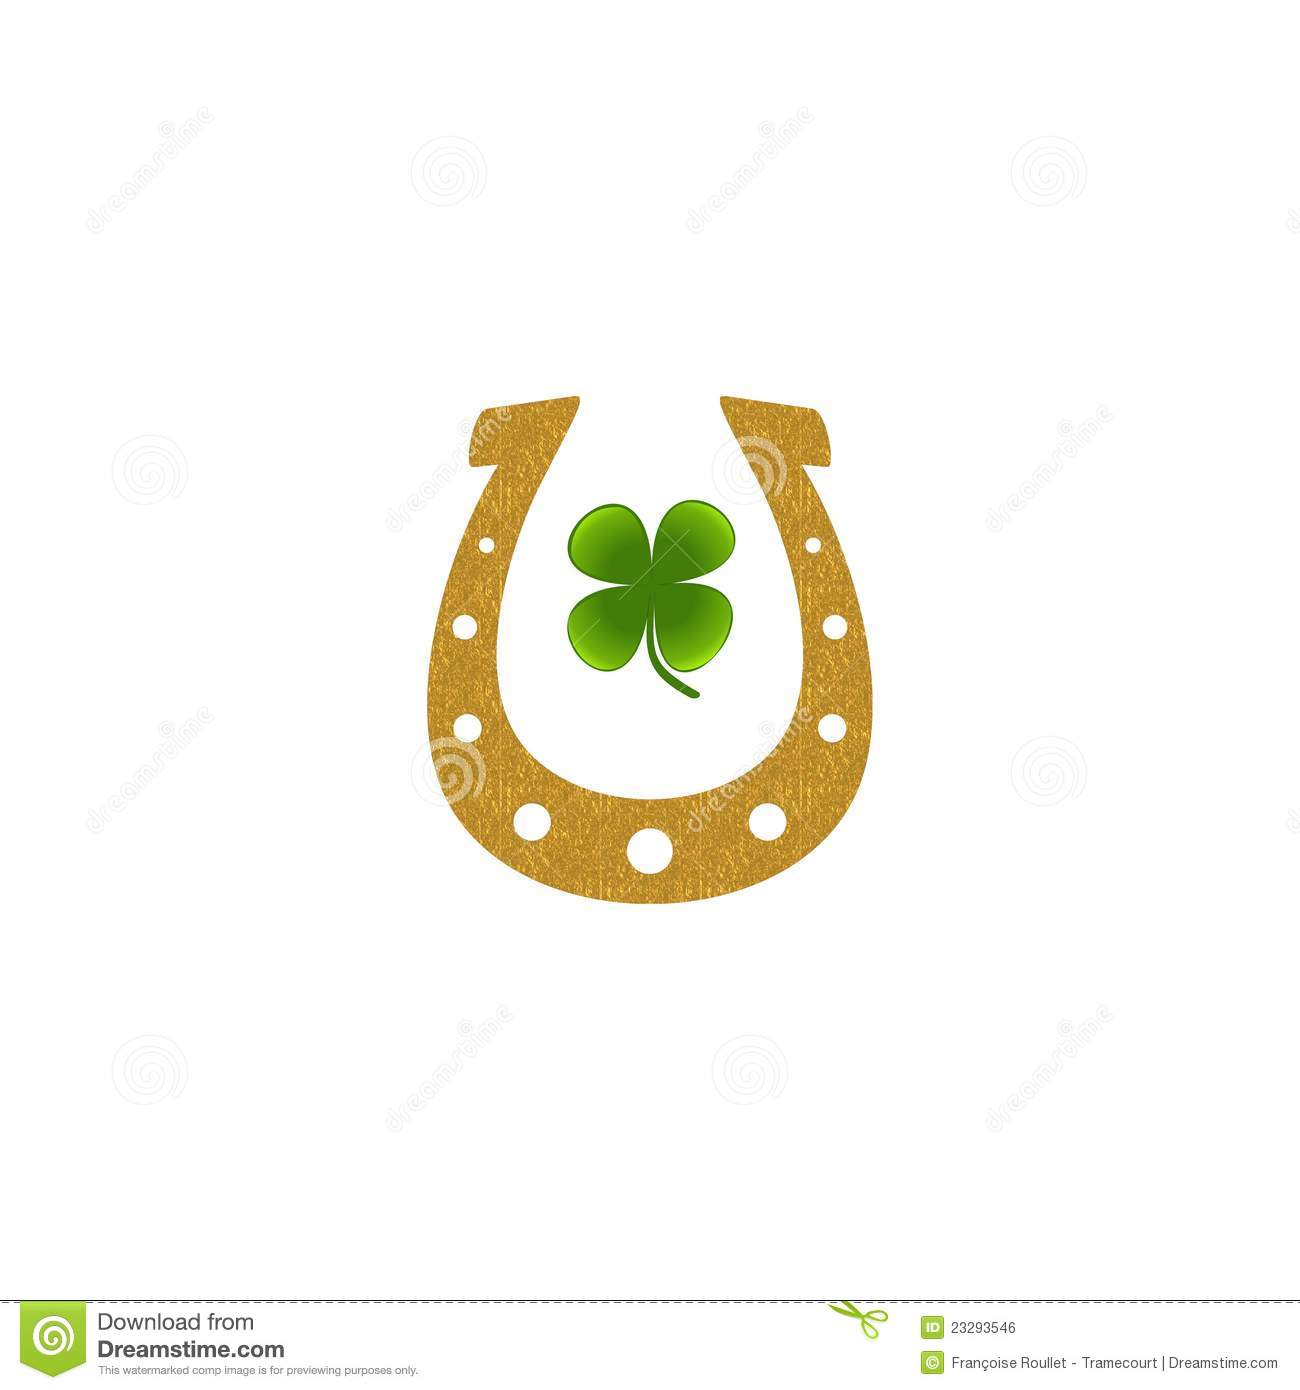 gold horseshoe green four leaf clover royalty free stock horseshoe clip art vector free download free horseshoe clip art images